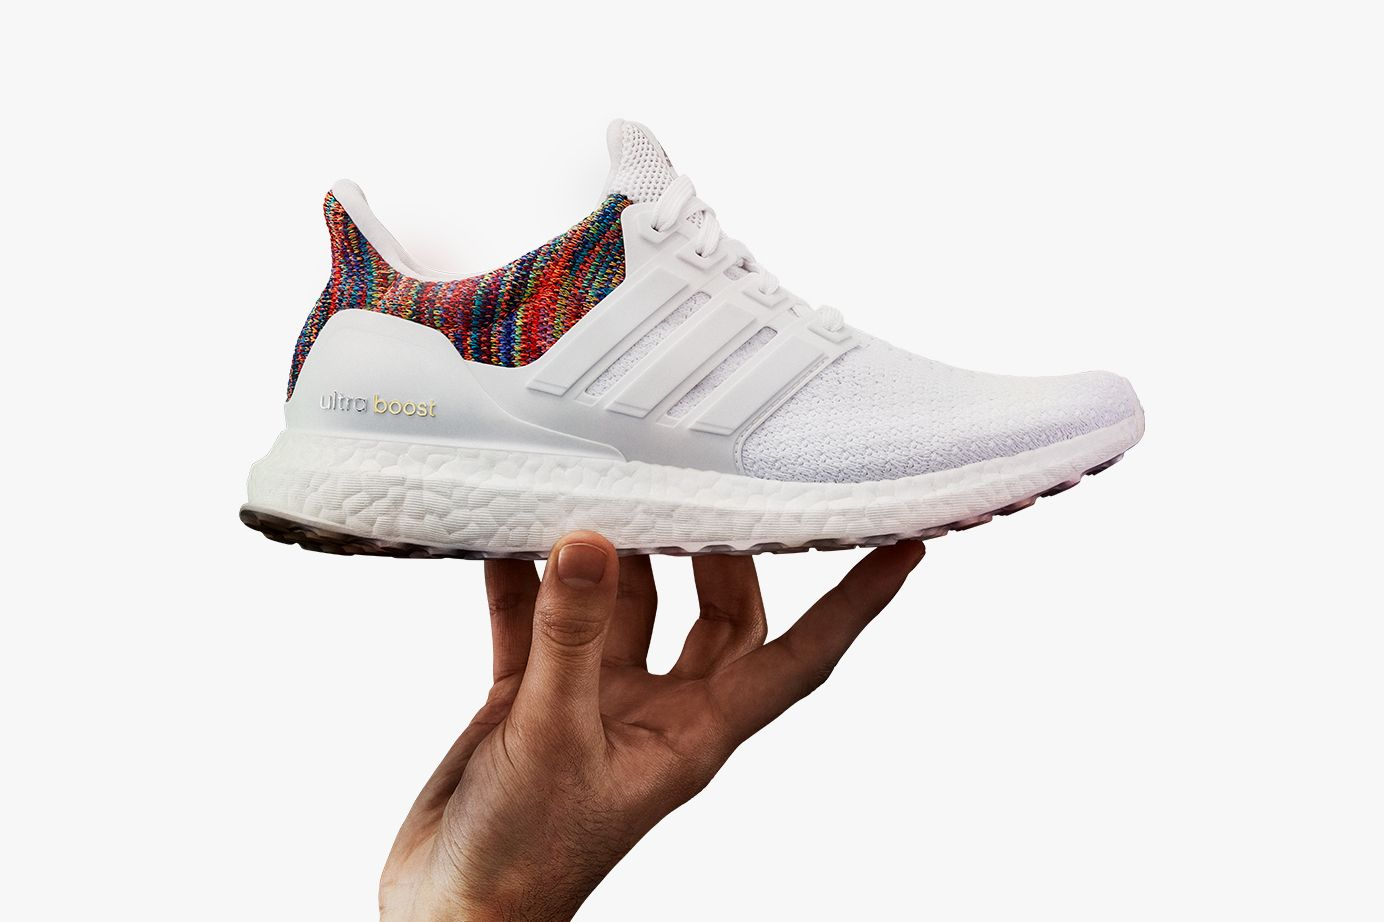 The miadidas UltraBOOST Will Launch Exclusively at the